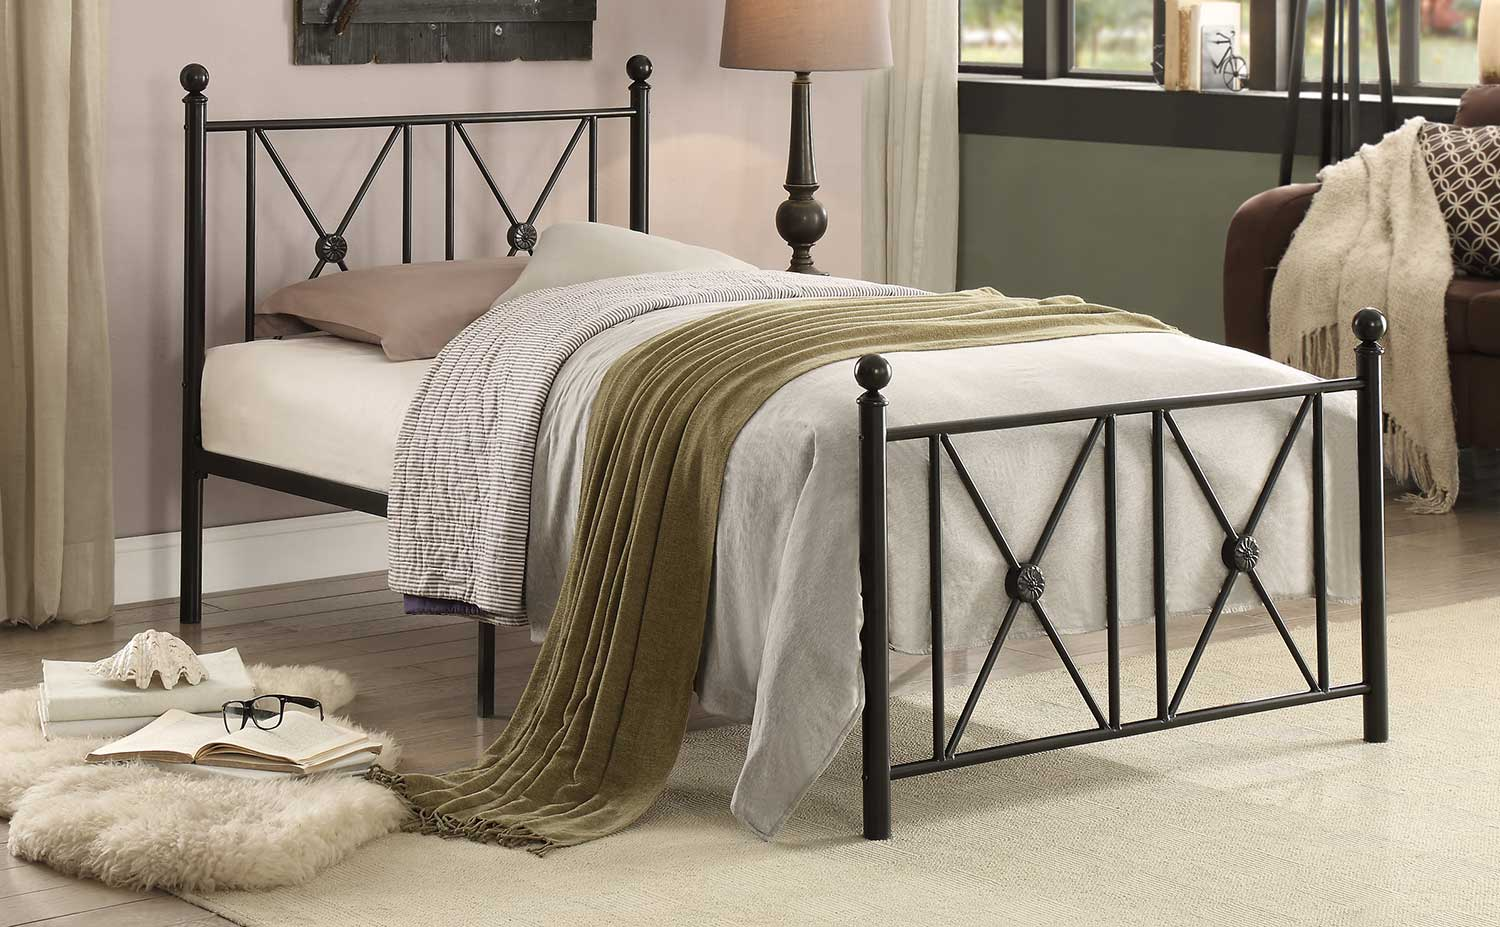 Homelegance Mardelle Metal Platform Bed - Black